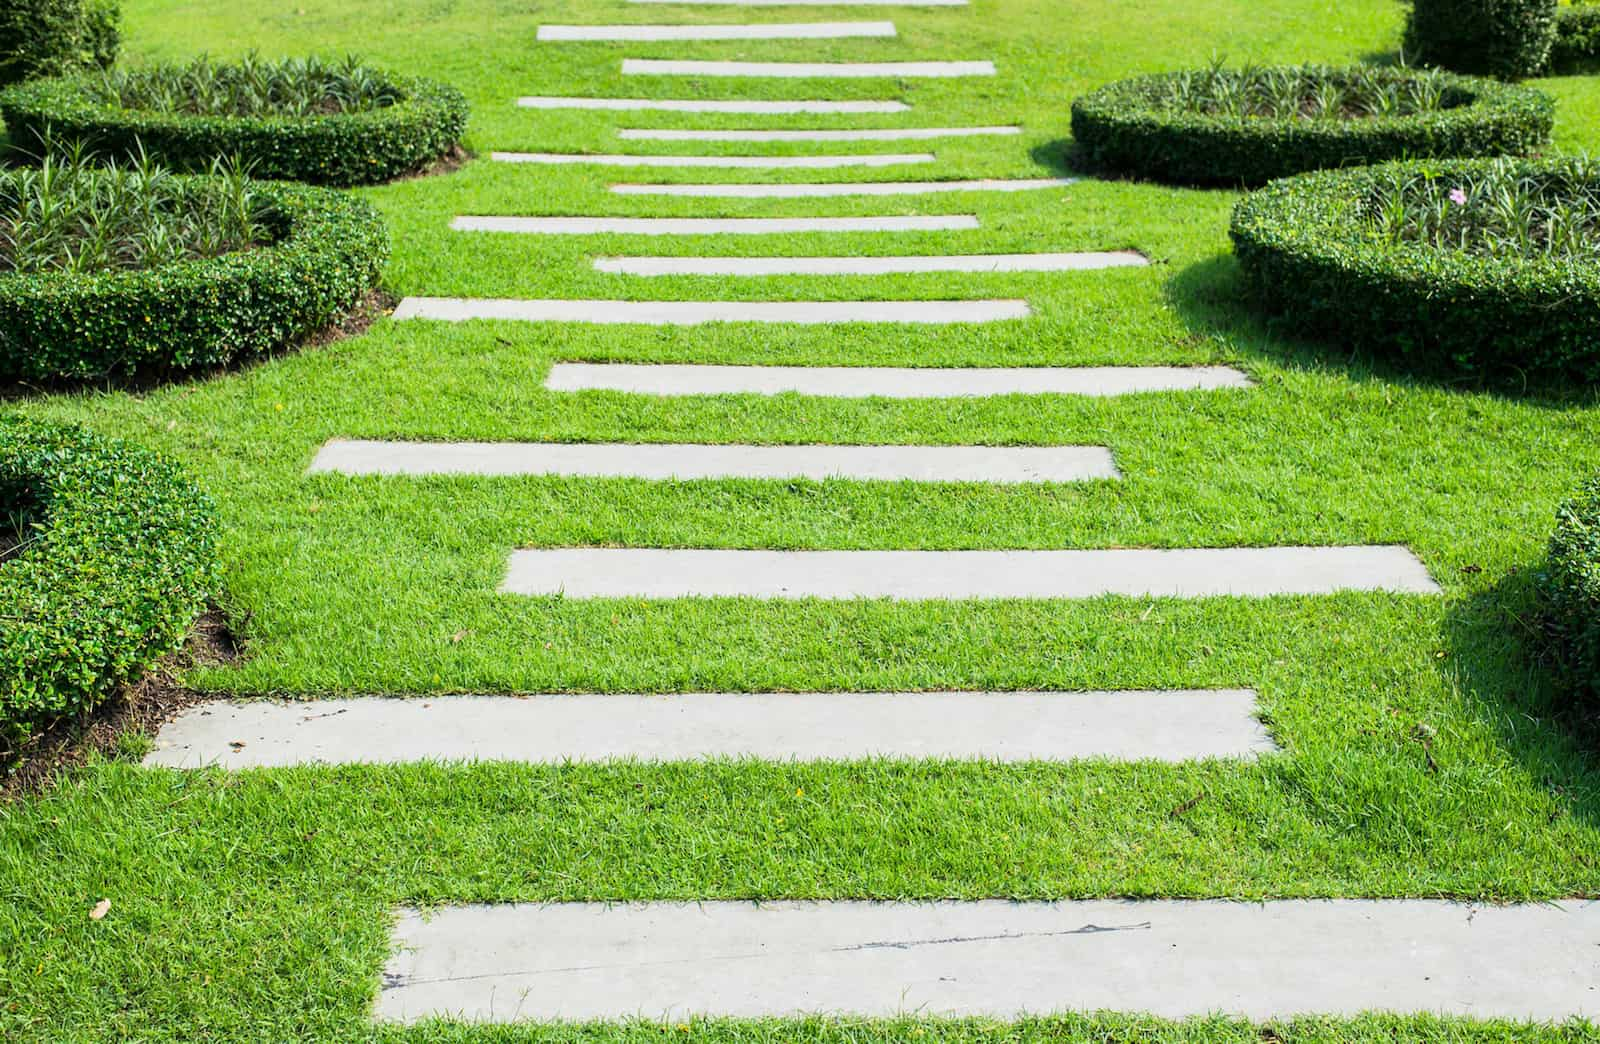 contemporary-stepping-stones-garden-path-ideas-image